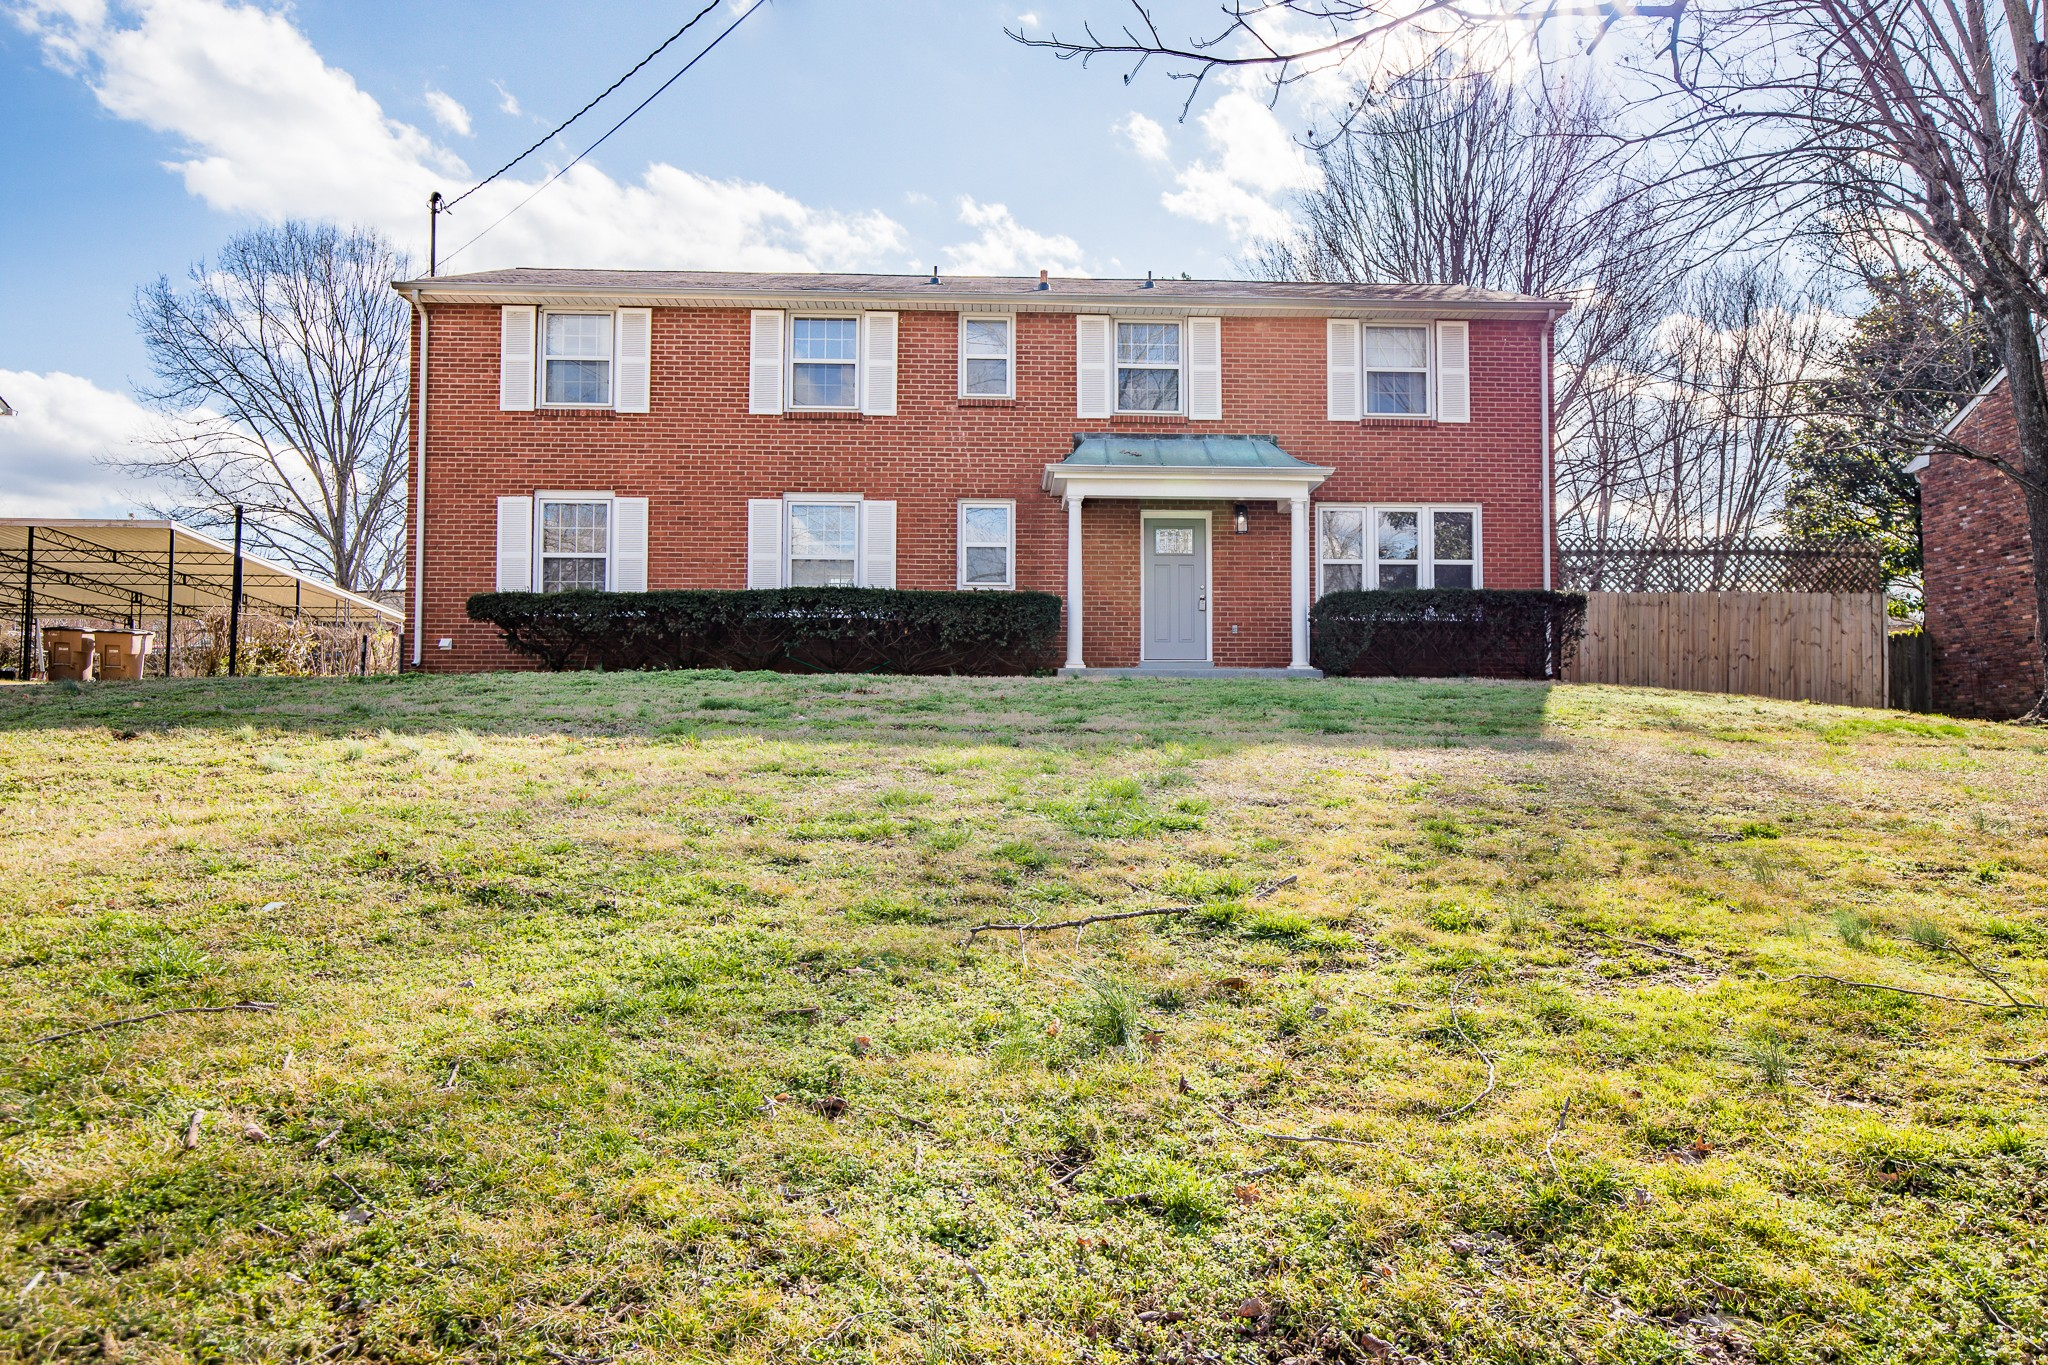 371 Lynn Dr, Nashville, TN 37211 - Nashville, TN real estate listing